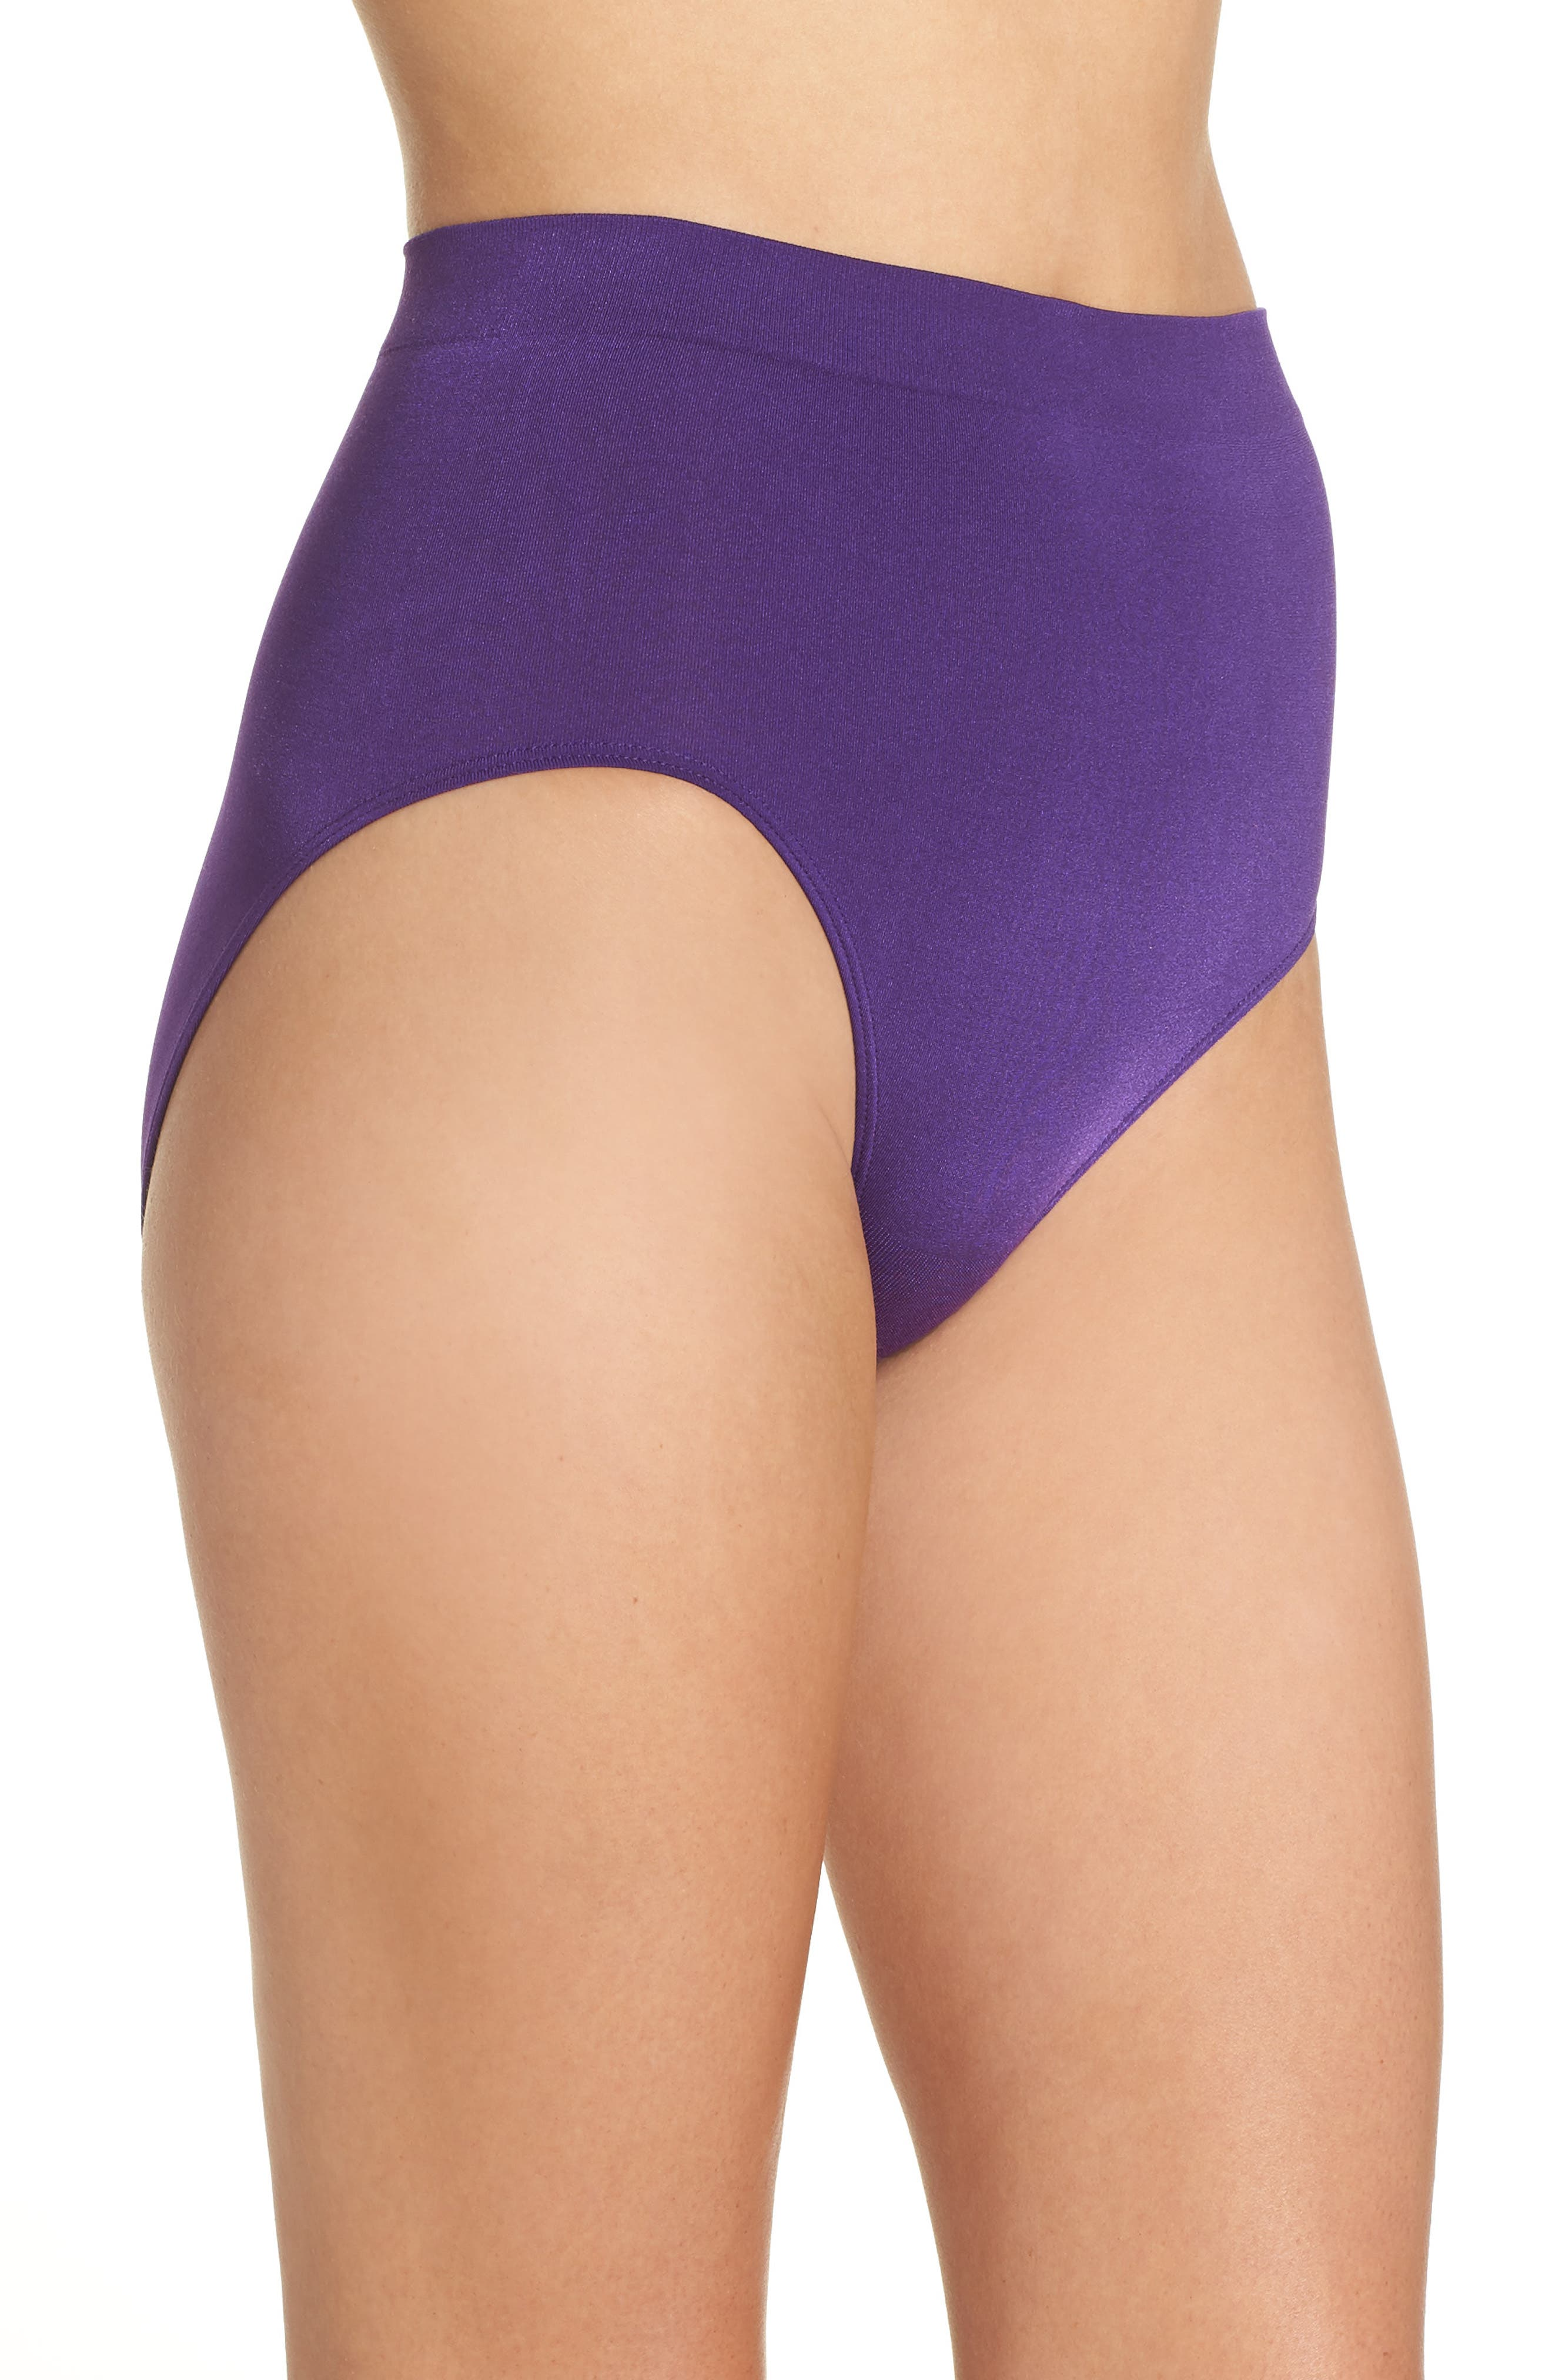 B Smooth Briefs,                             Alternate thumbnail 144, color,